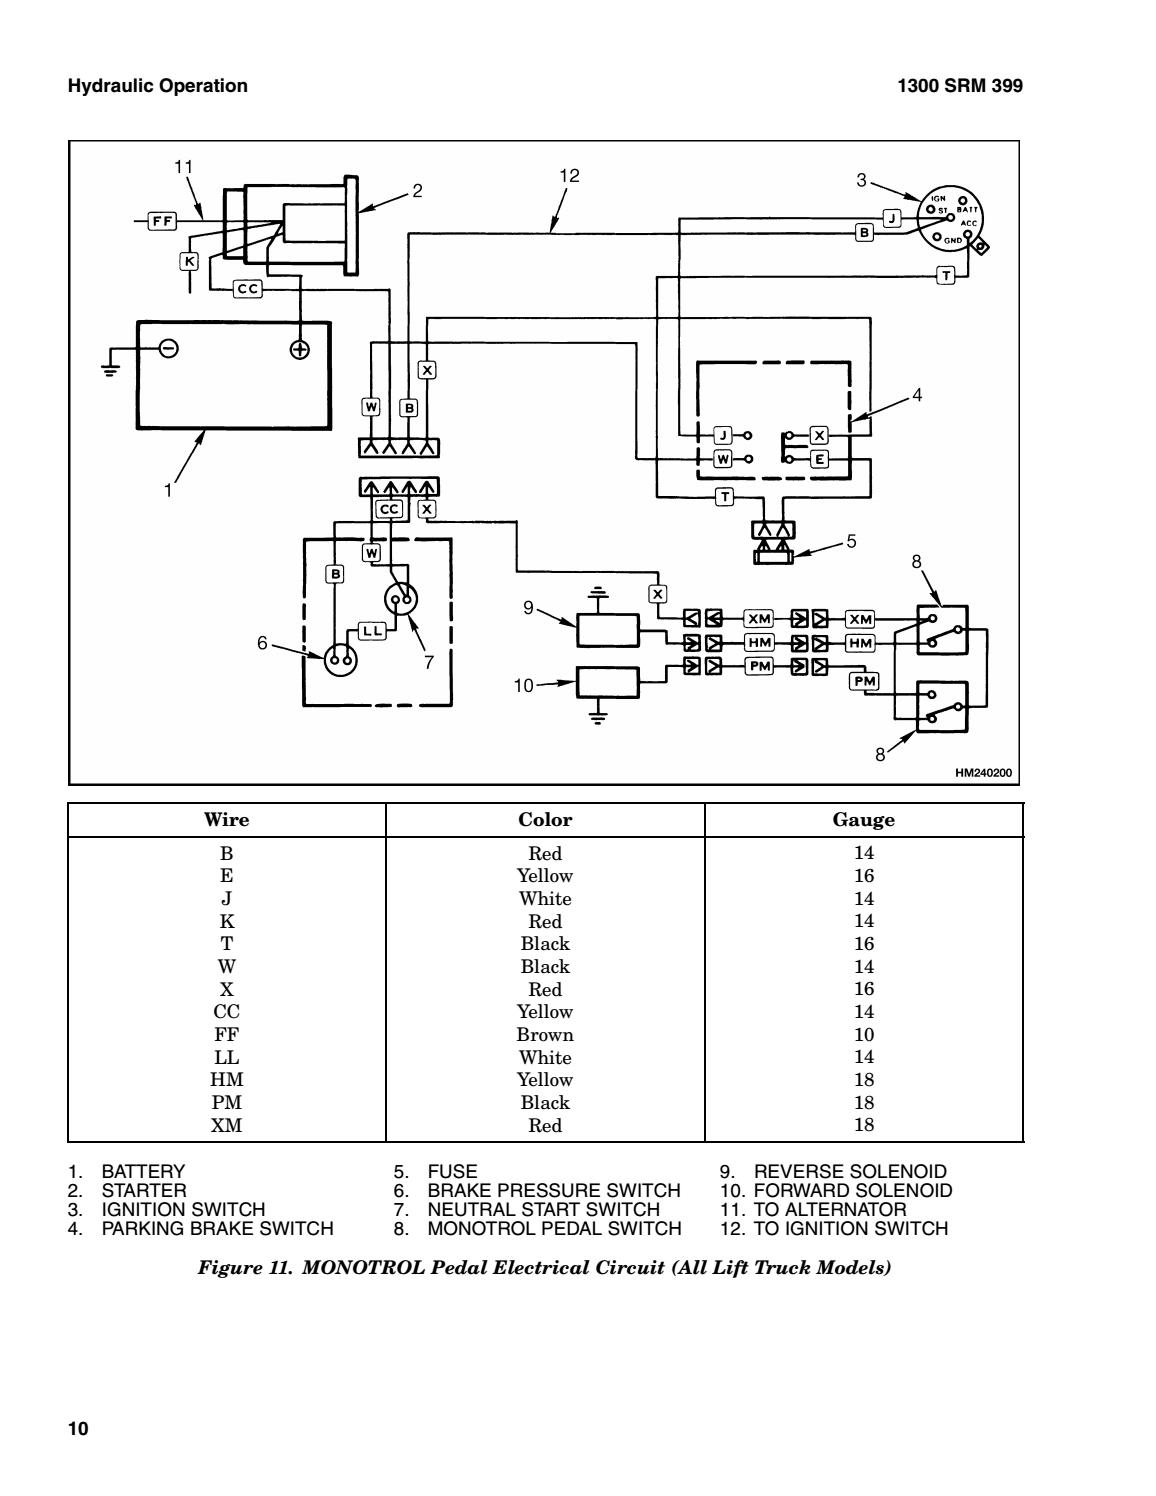 Hyster 100 Wiring Diagram - 1983 Mustang Gt Wiring Diagrams -  coded-03.losdol2.jeanjaures37.fr | Hyster 100 Wiring Diagram |  | Wiring Diagram Resource